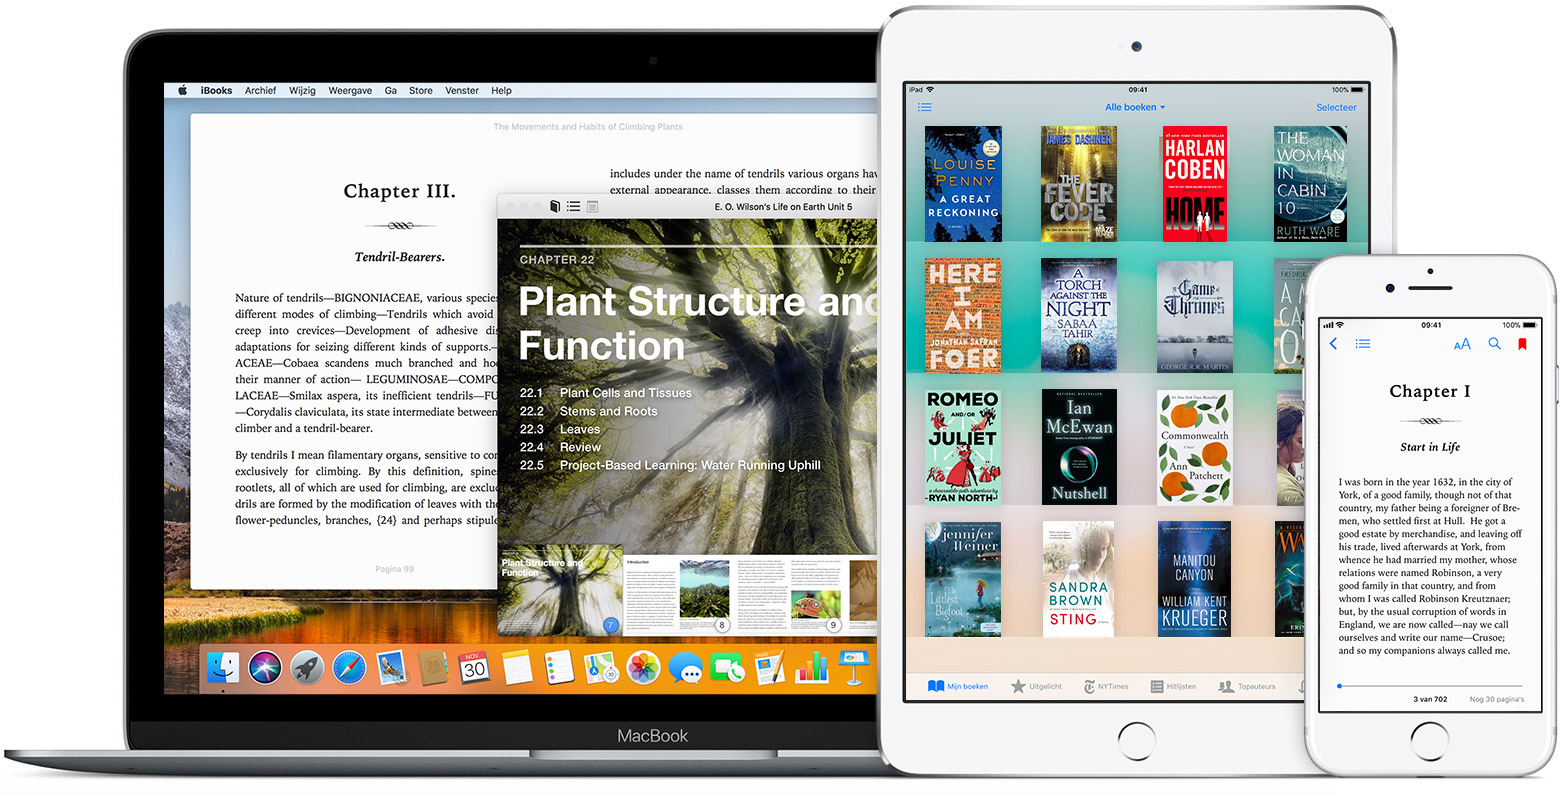 Copiar Libros De Ibooks A Pc Aan De Slag Met Ibooks Apple Support